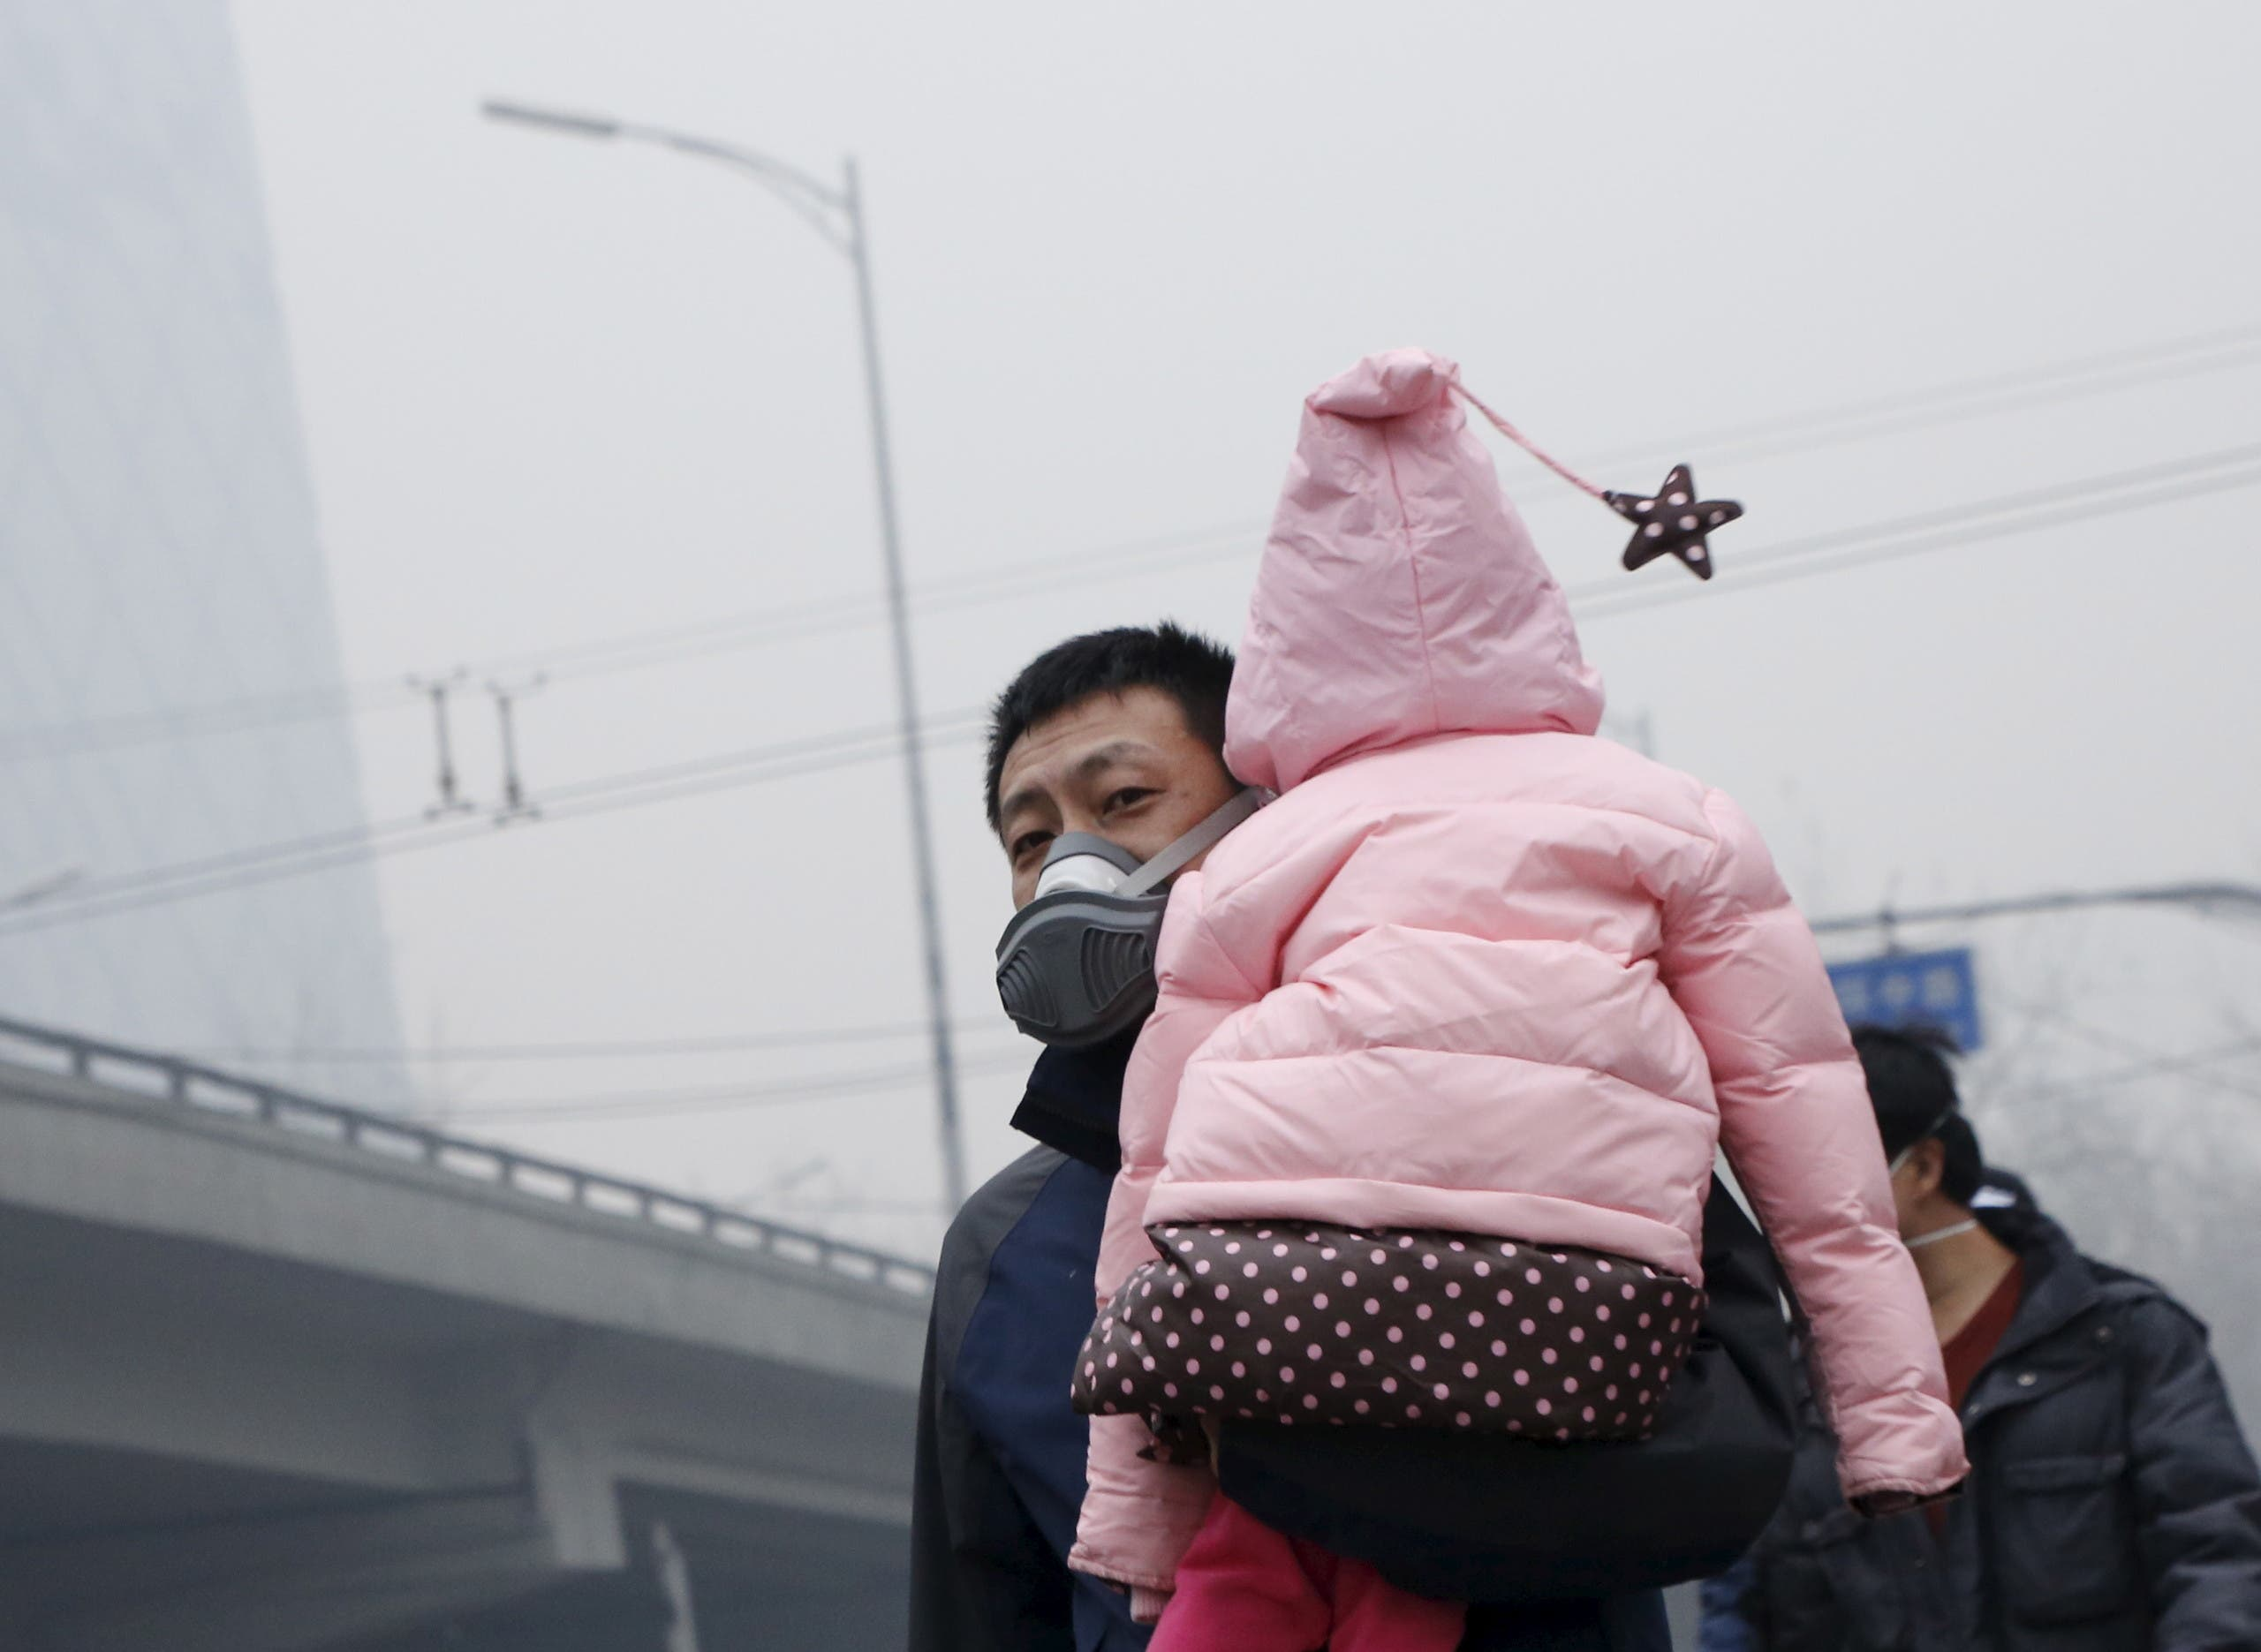 A man wearing a mask carries his baby on his shoulder amid heavy smog after the city issued its first ever red alert for air pollution, in Beijing, China, December 8, 2015. (File photo: Reuters)